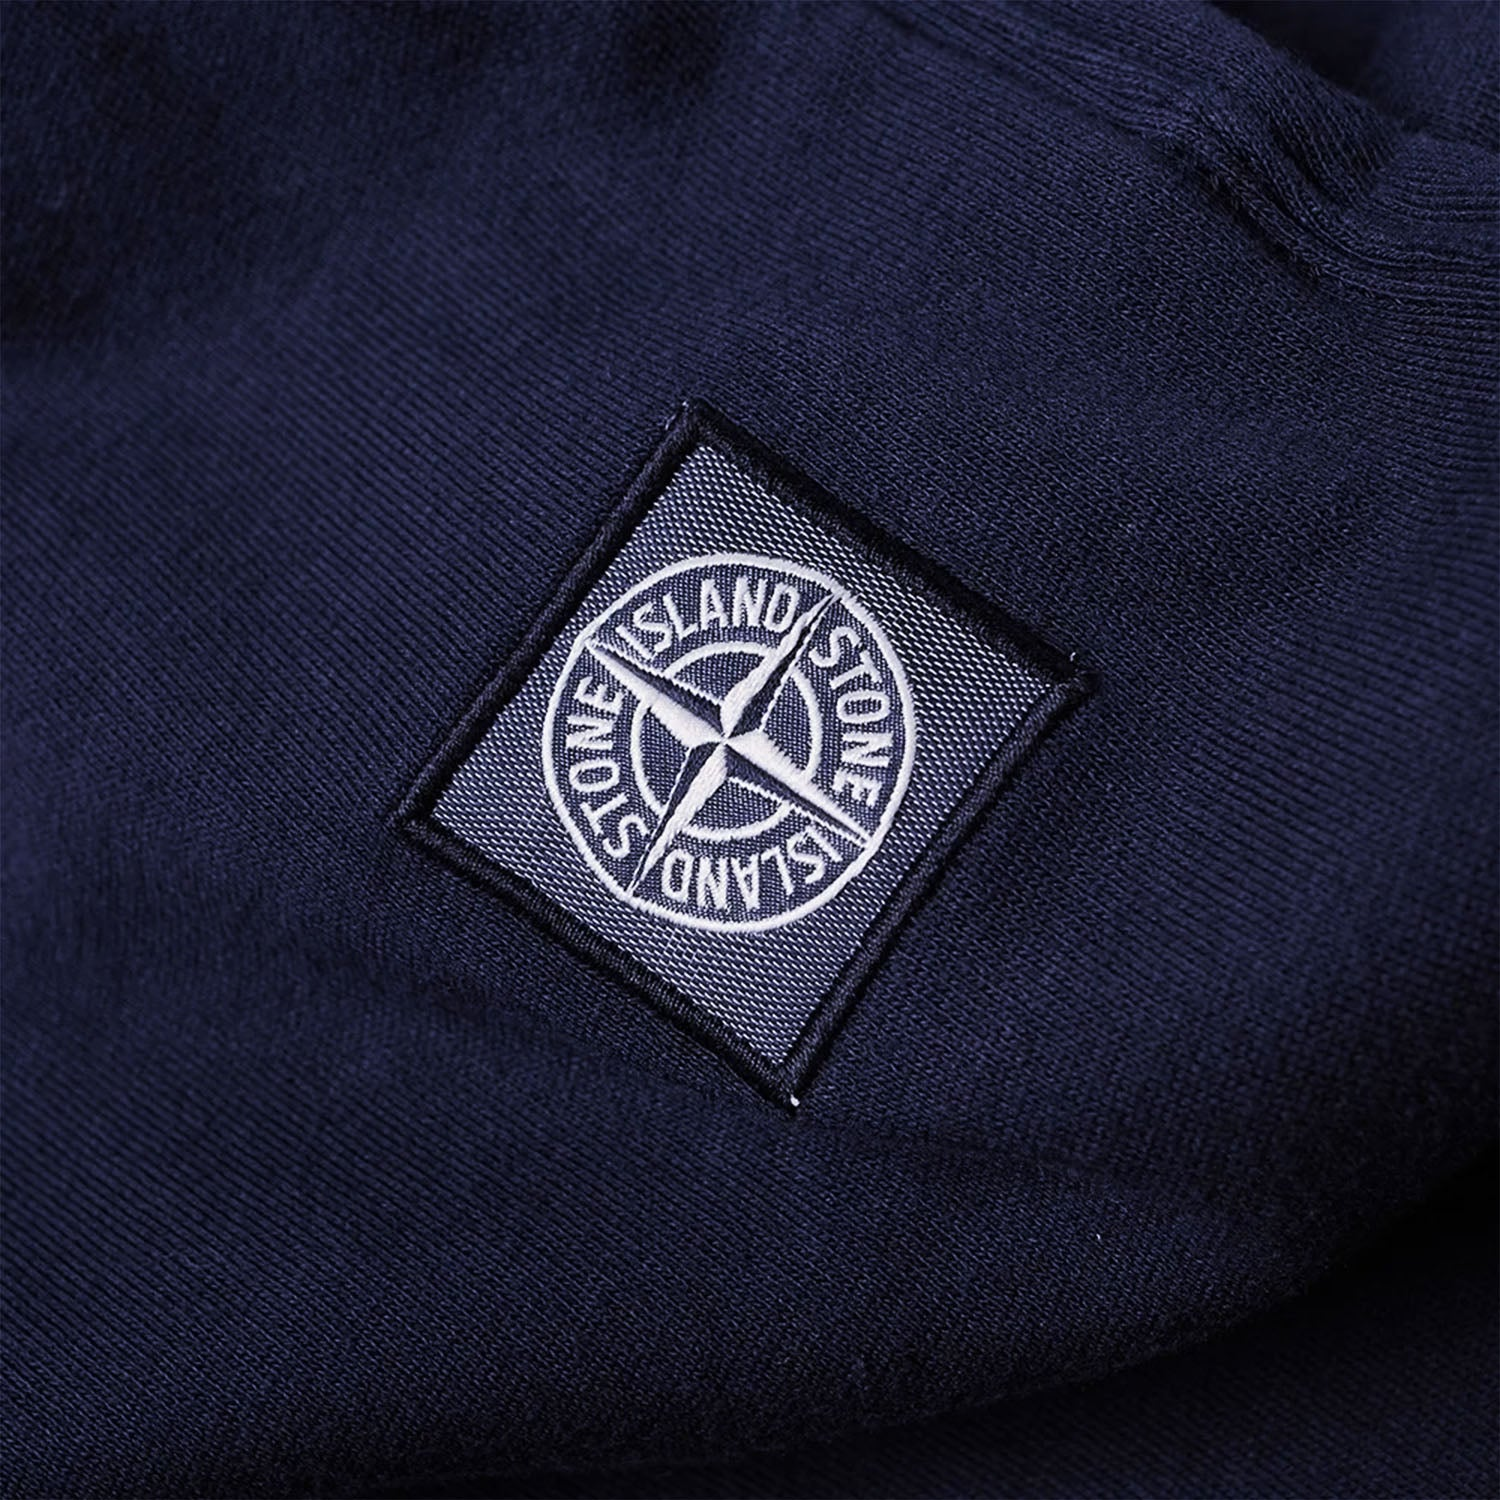 Stone Island Embroidered Patch Logo Sweatpants Navy